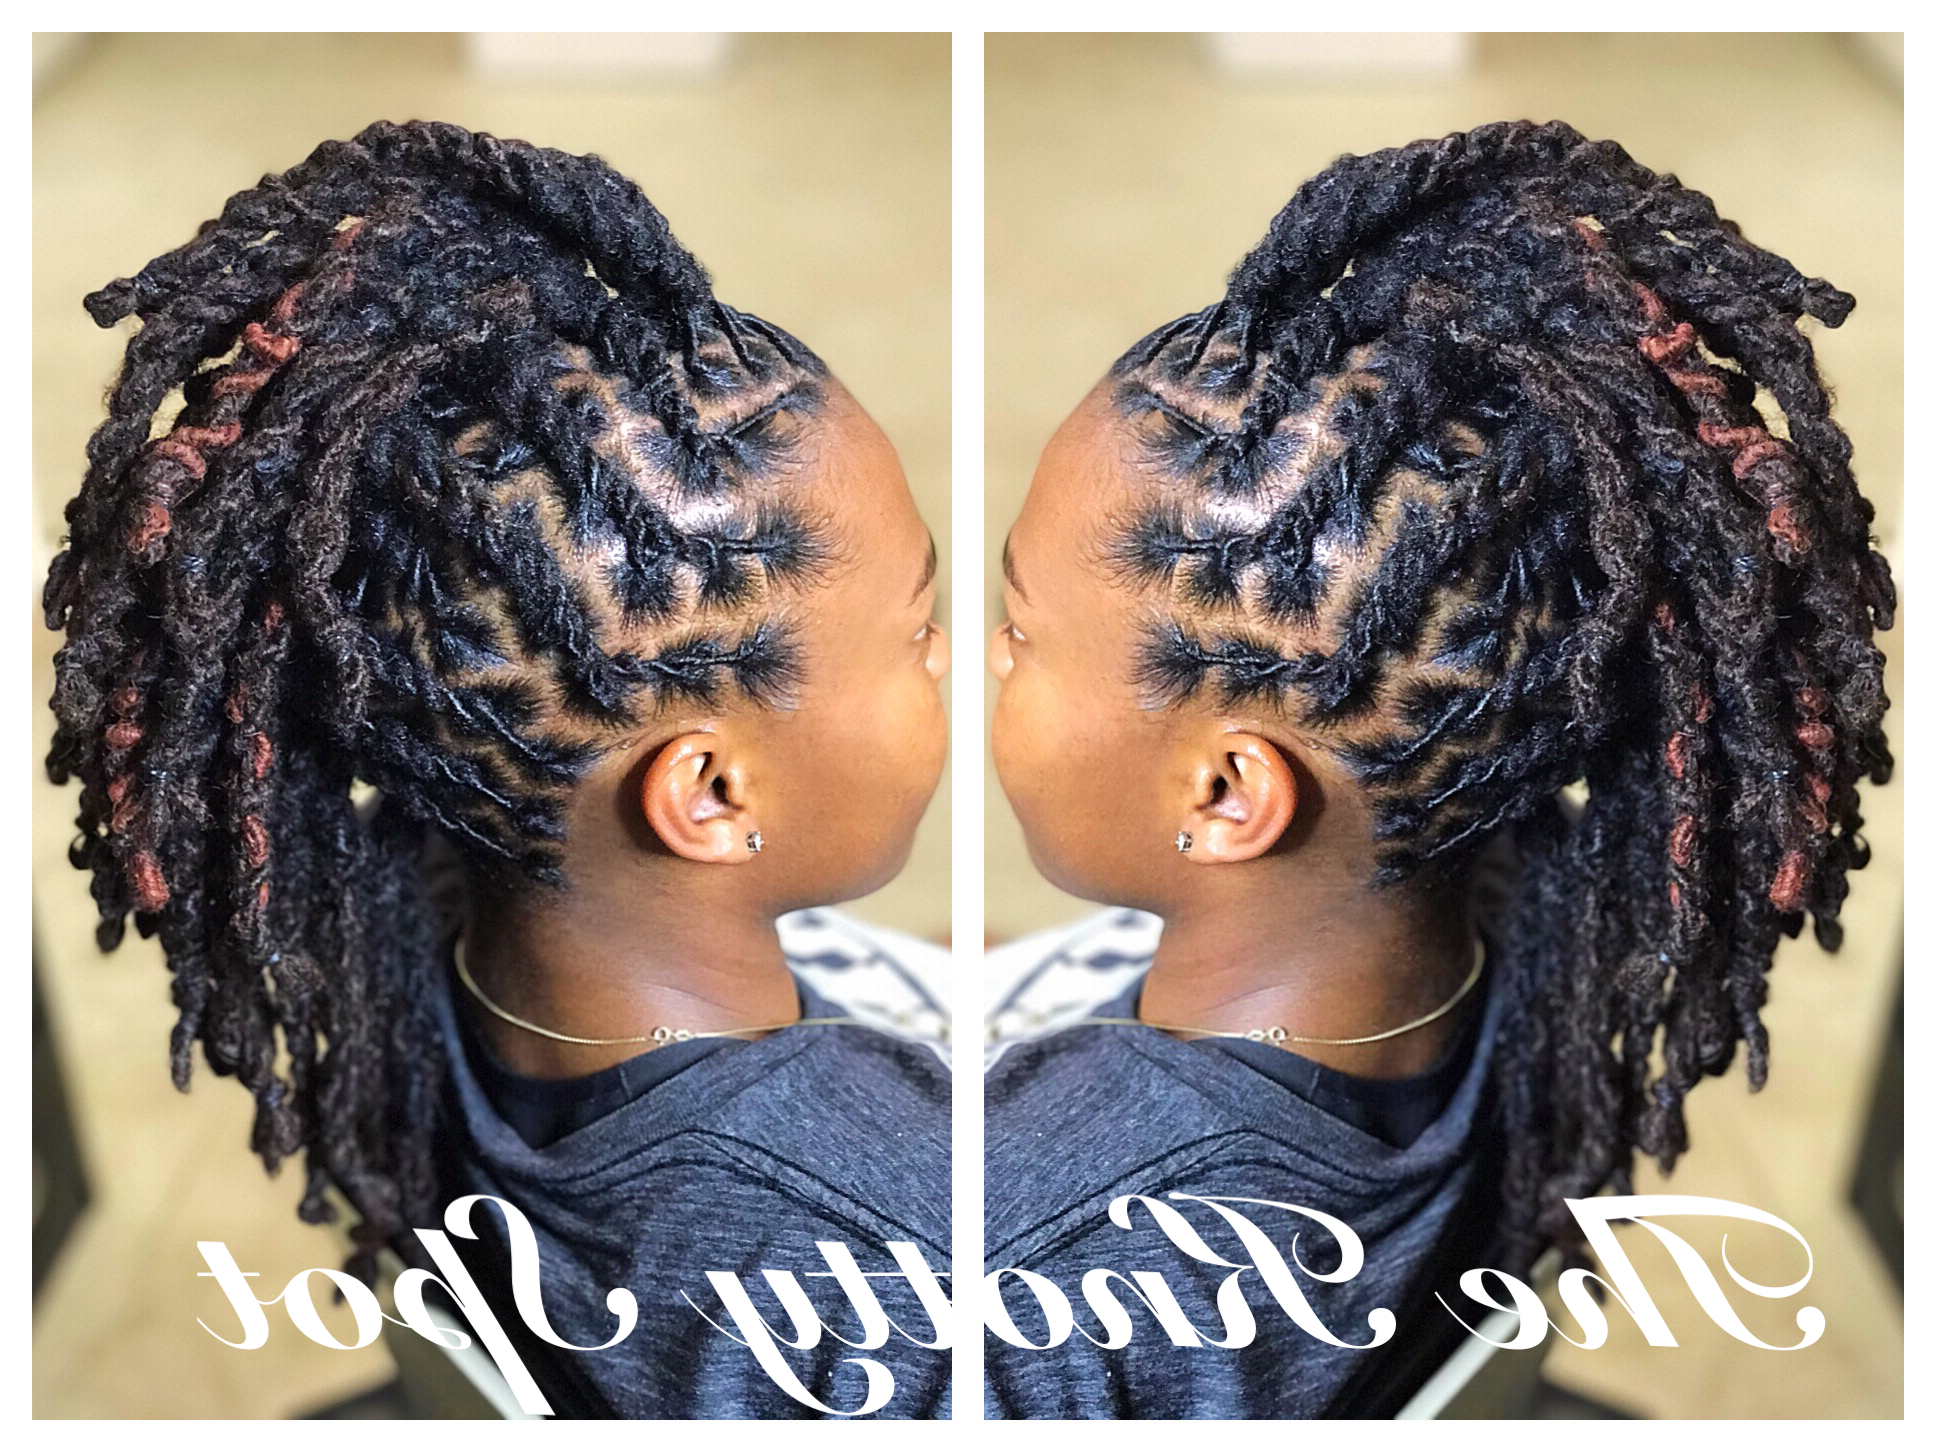 Hair Styles, Dreadlock For Most Popular Dreadlocked Mohawk Hairstyles For Women (View 4 of 20)